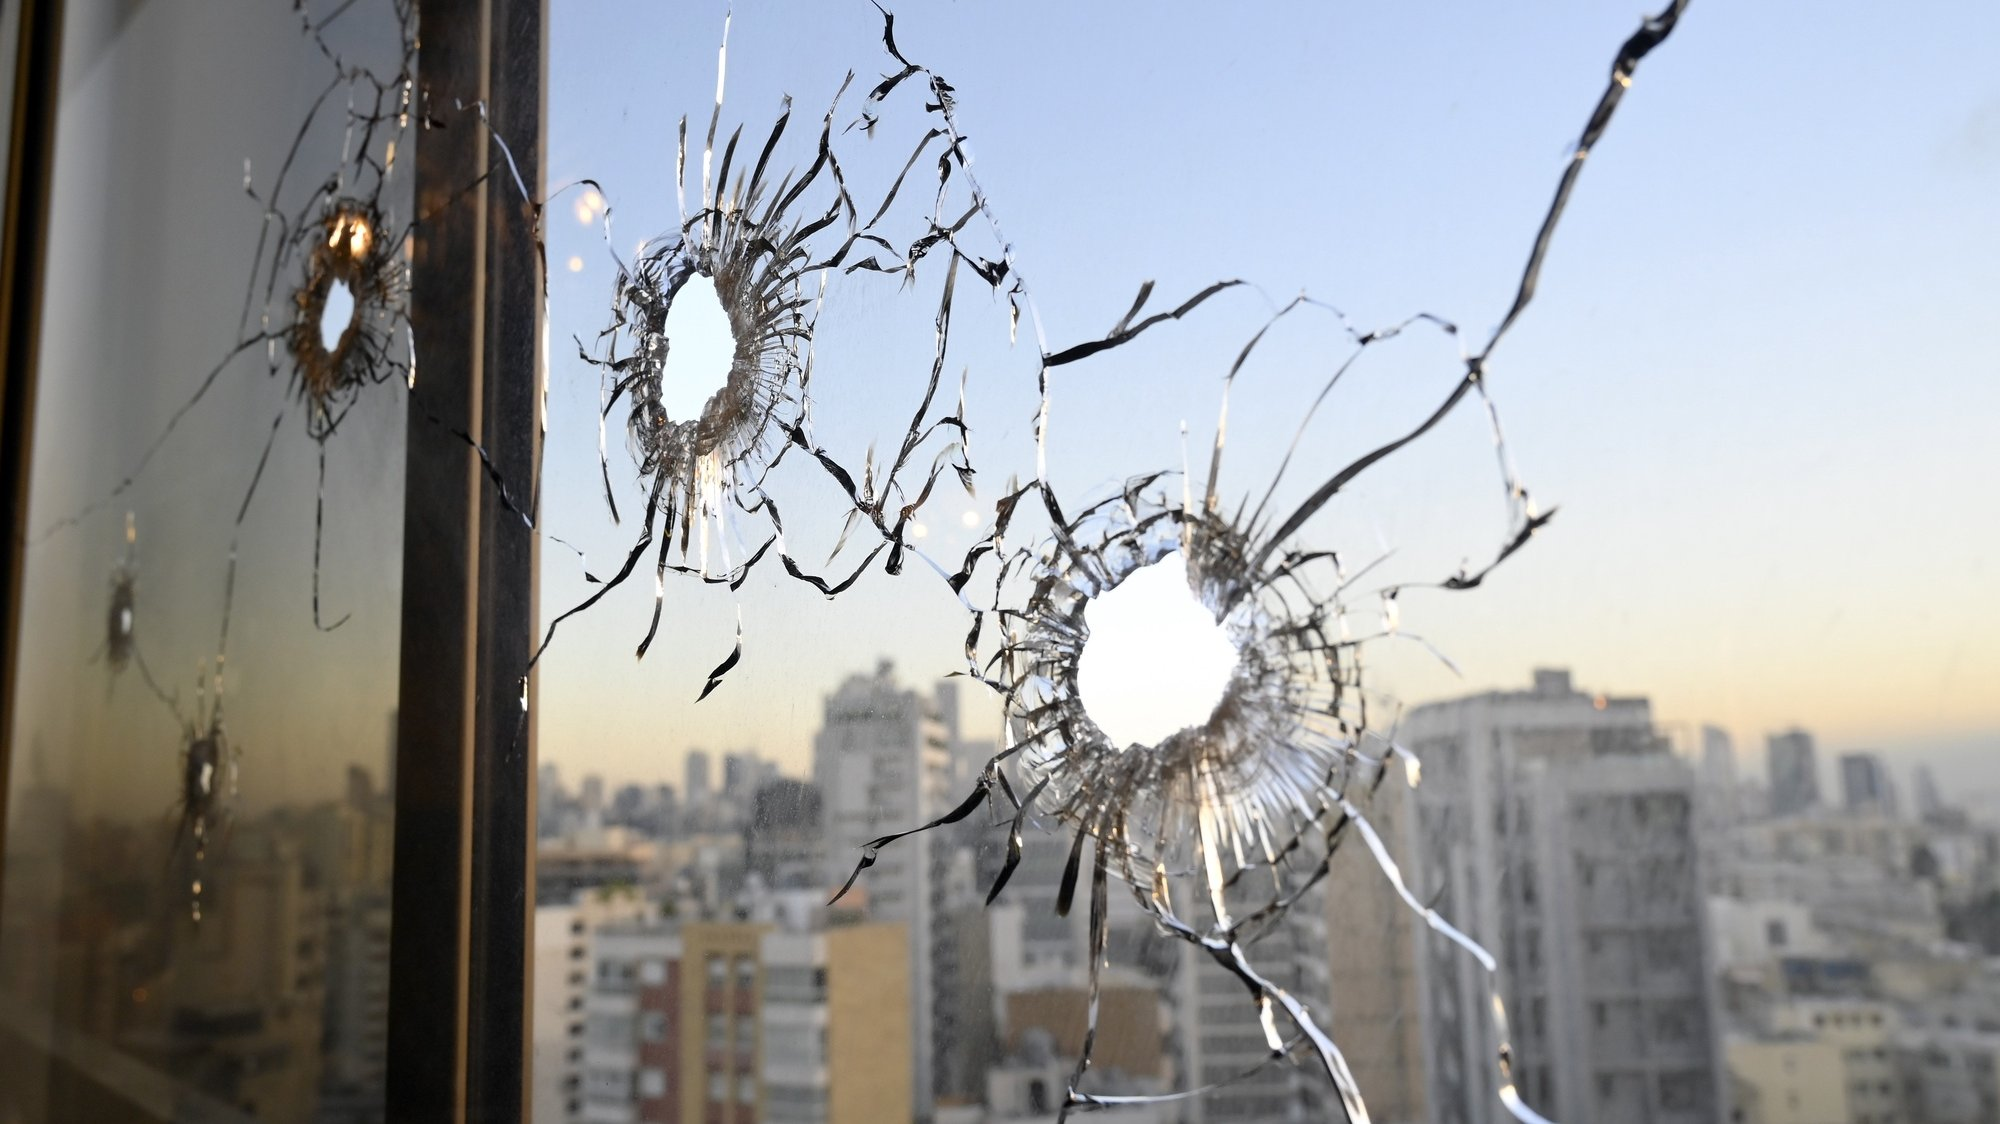 epa09524706 Gun holes are seen on a window at a building a day after clashes in the area of Tayouneh in Beirut, Lebanon, 15 October 2021. At least six people were killed and 20 wounded at a Beirut rally organized by Hezbollah and Amal movements to demand the dismissal of the Beirut blast lead investigator.  EPA/WAEL HAMZEH